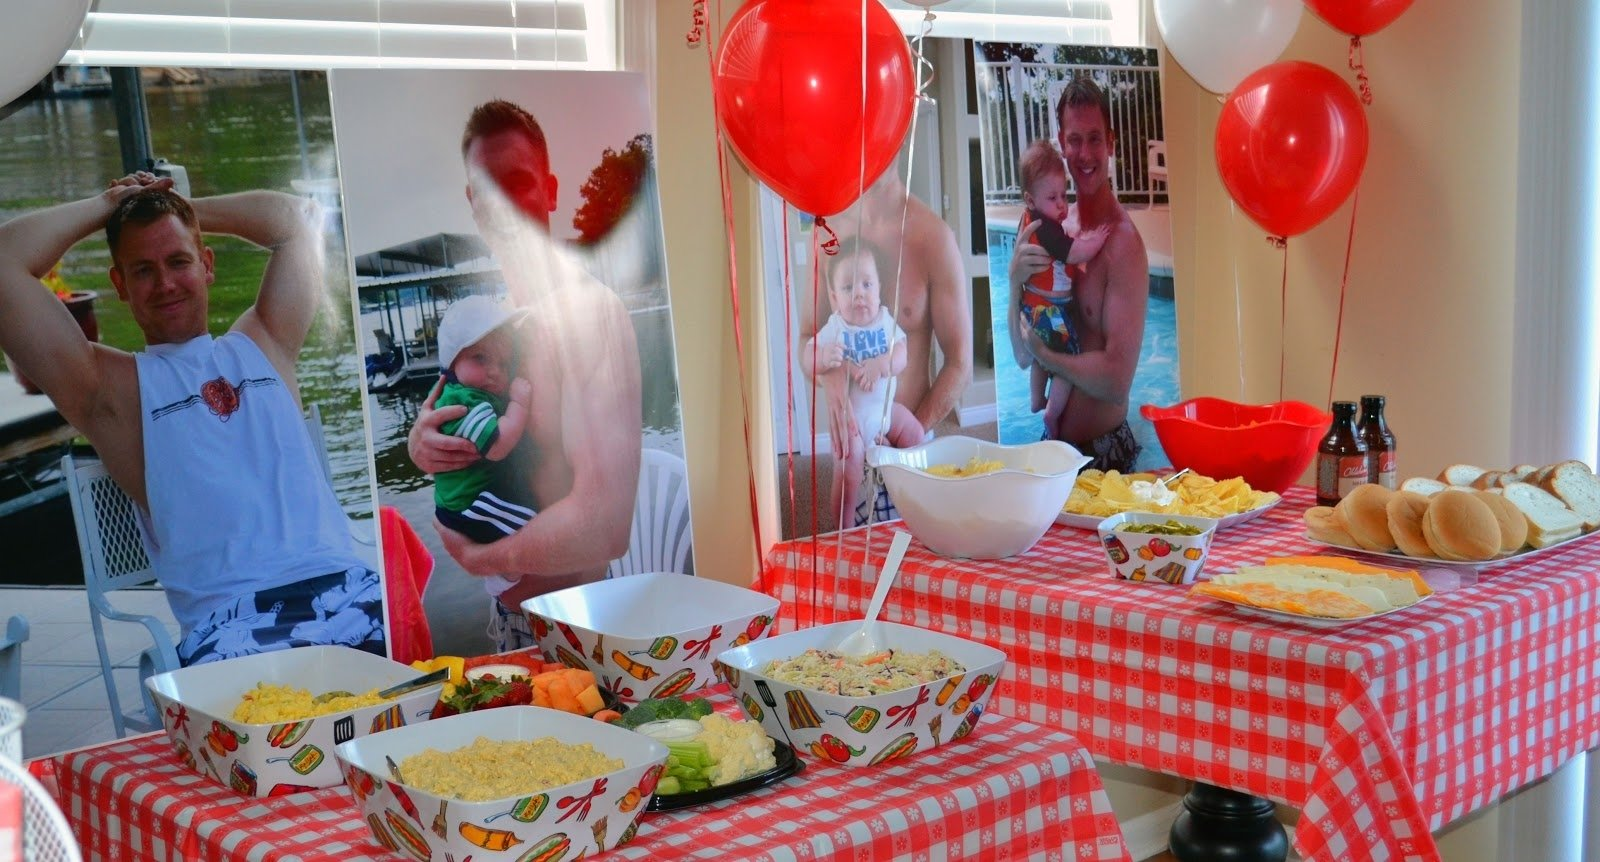 10 Stylish Birthday Party Ideas For Husband pastel parties celebrations 2020